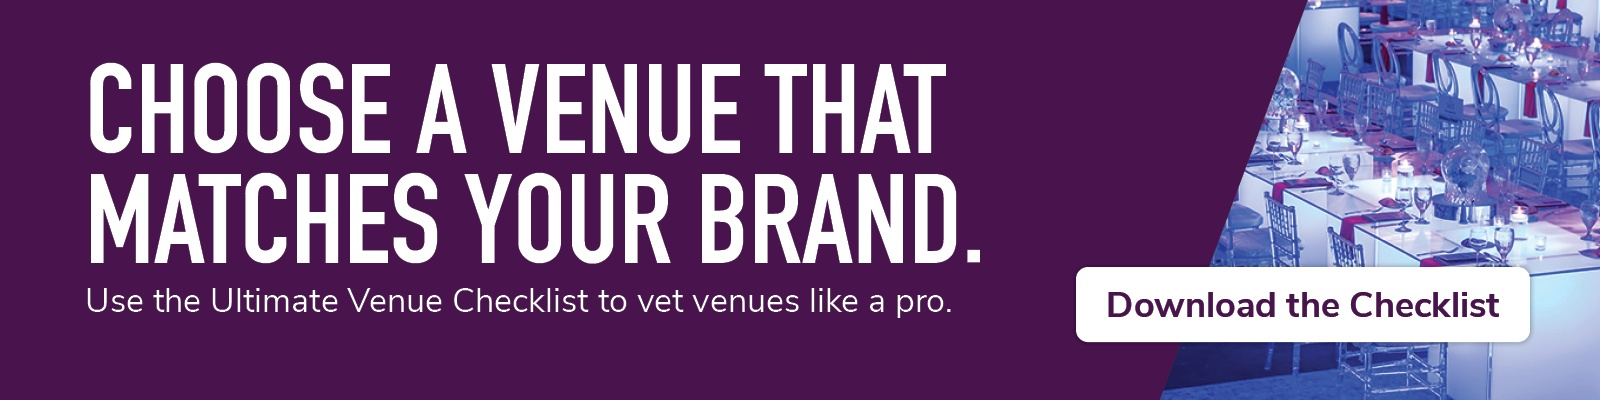 choose a venue that matches your brand; use the ultimate venue checklist to vet venues like a pro; download the checklist